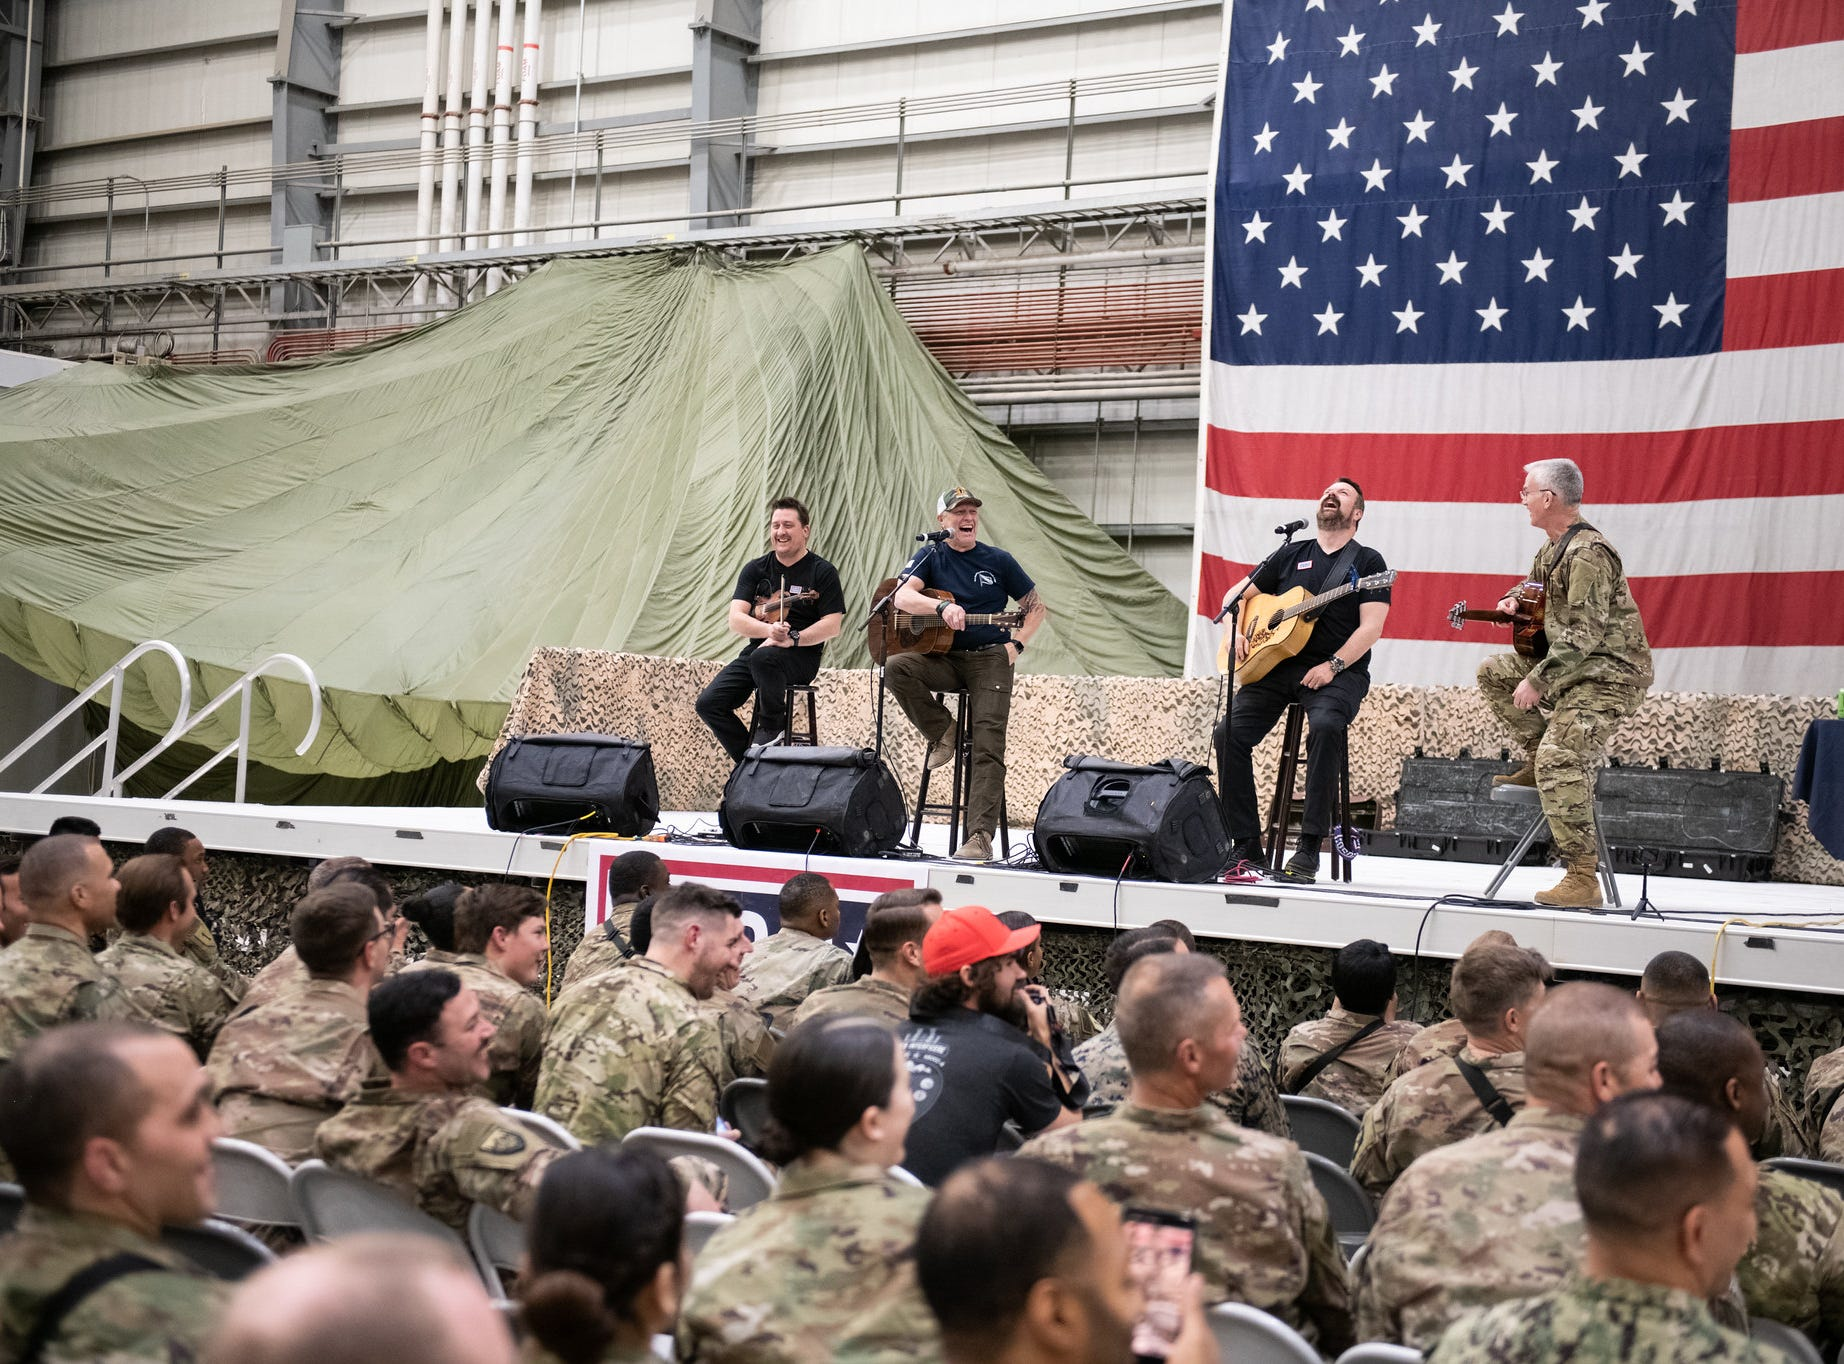 Country music artist Craig Morgan was joined Air Force Gen. Paul J. Selva, vice chairman of the Joint Chiefs of Staff, on a tour across the world as they visit service members overseas to thank them for their service and sacrifice.